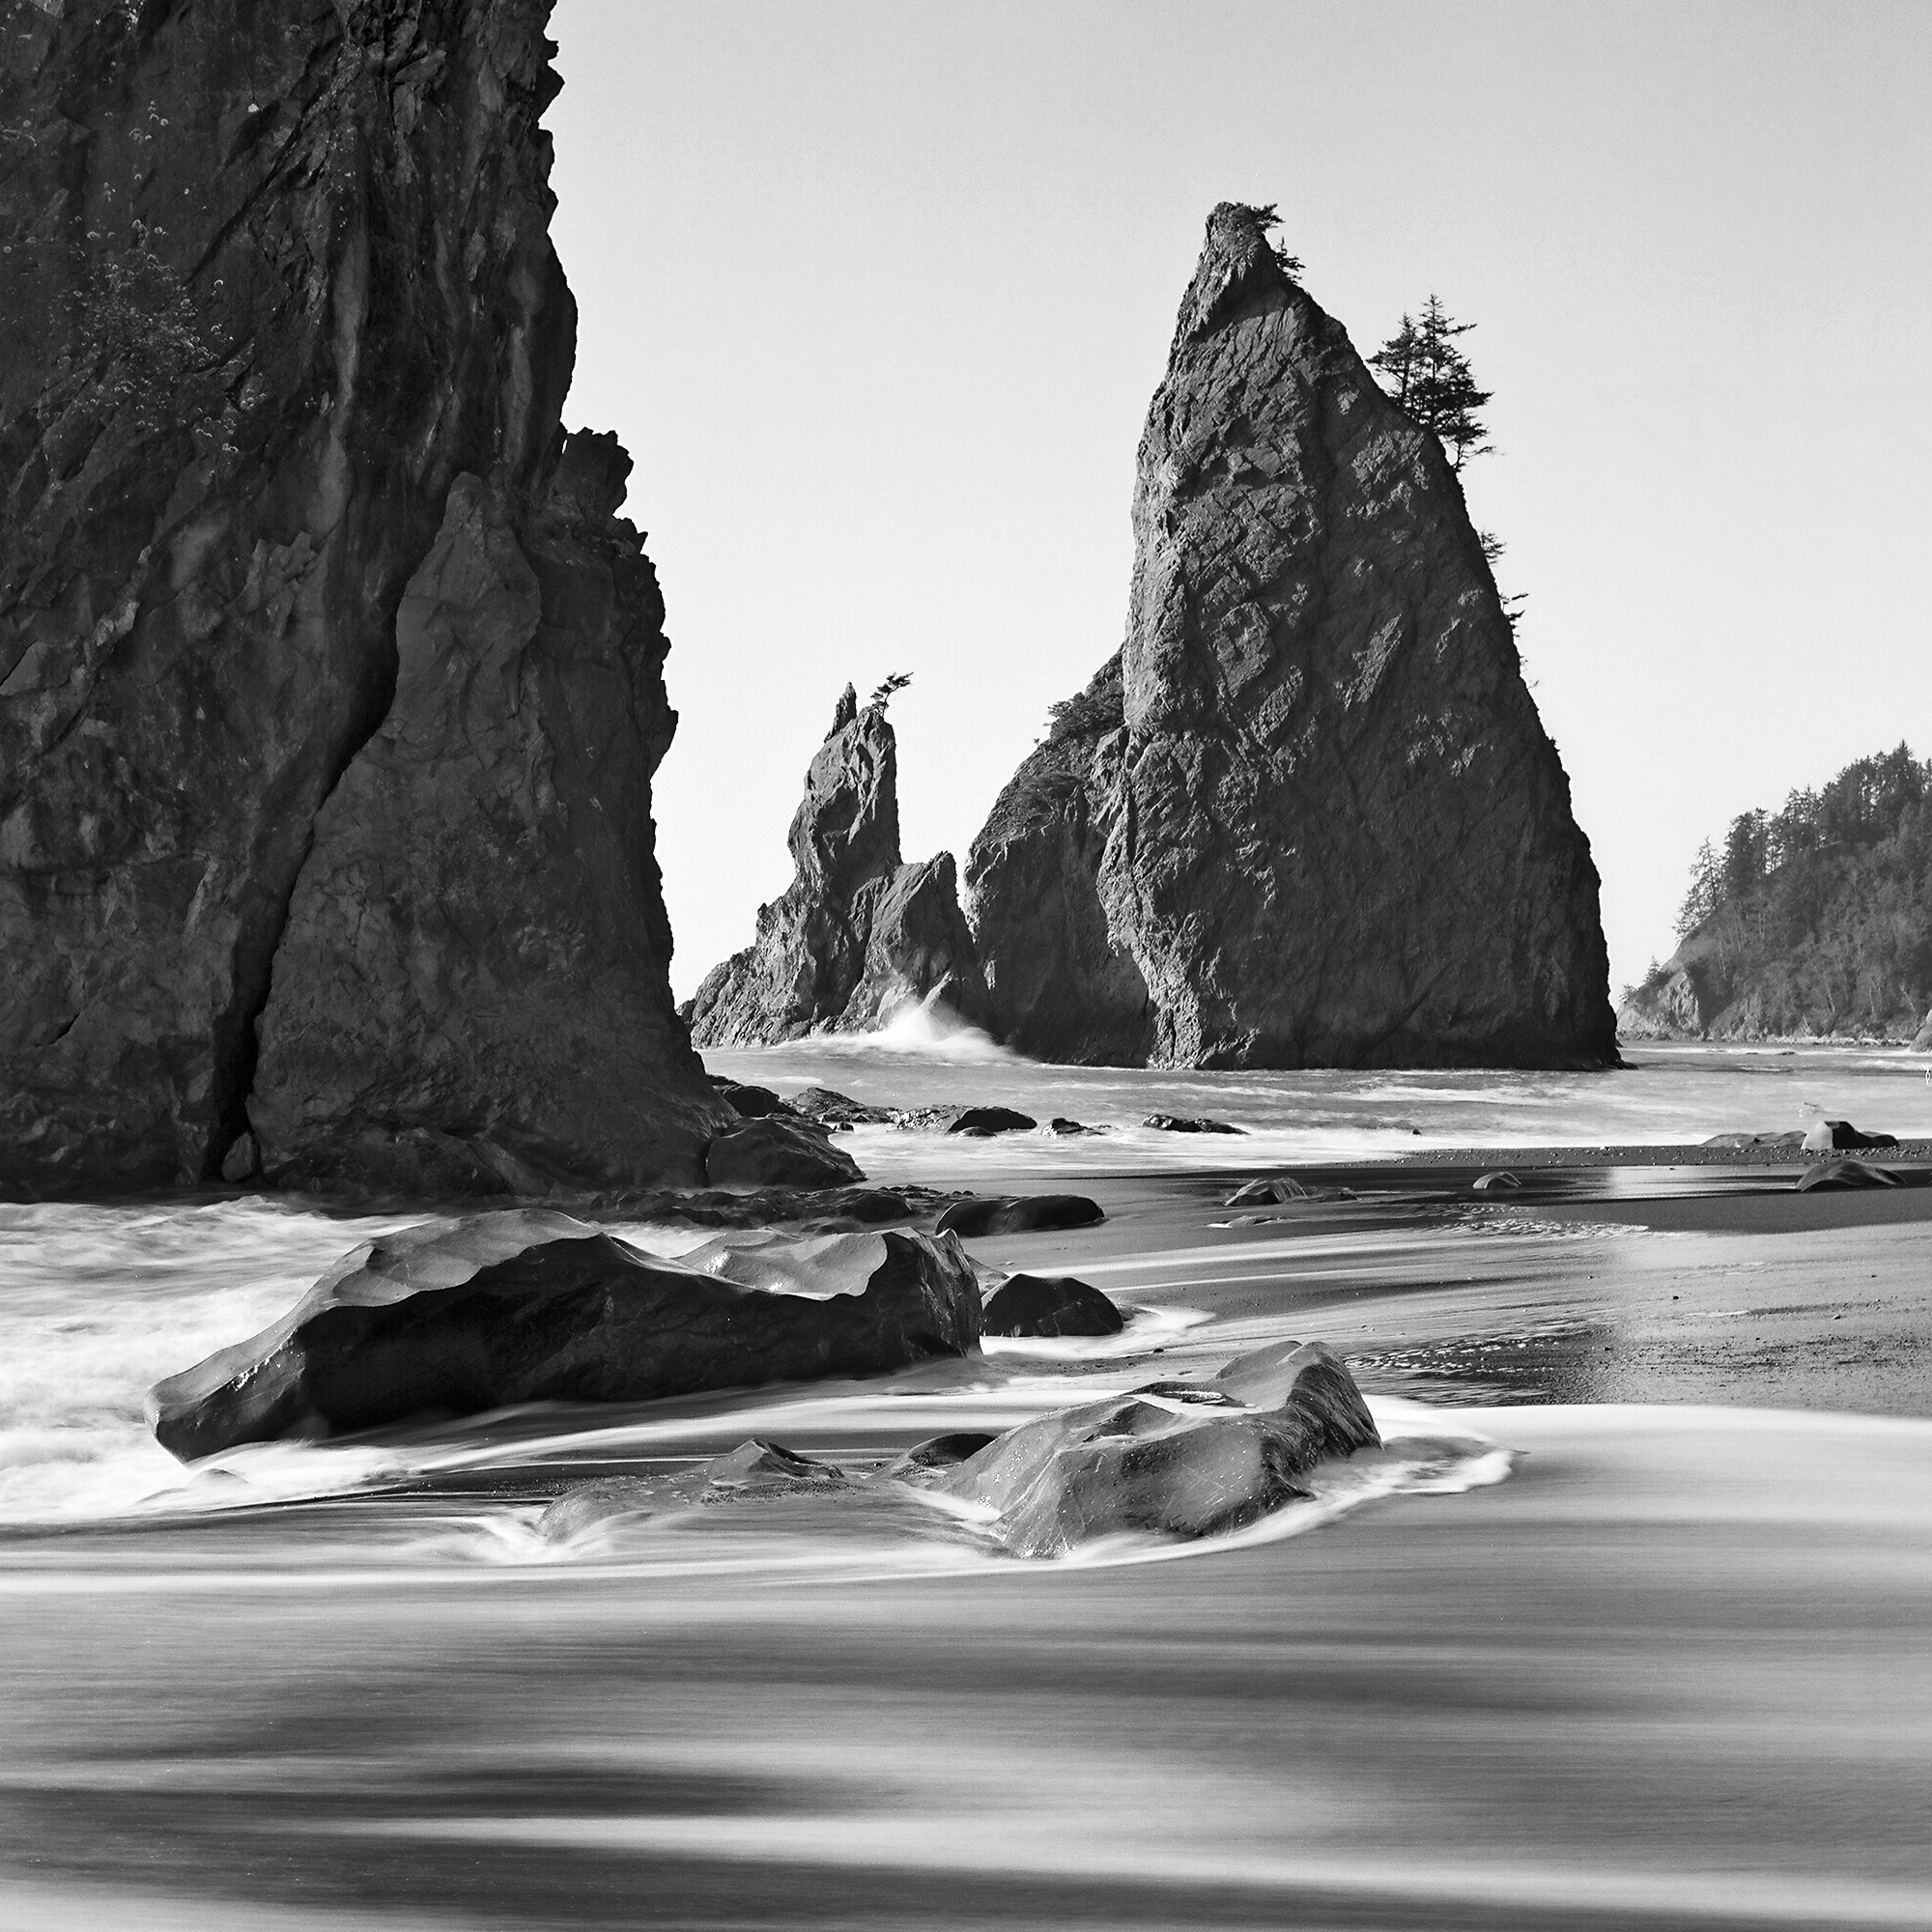 Rialto Beach, Olympic National Park, Washington © 2015.  Image: Rolleiflex 2.8 F + Zeiss Planar 1:2.8/80mm.